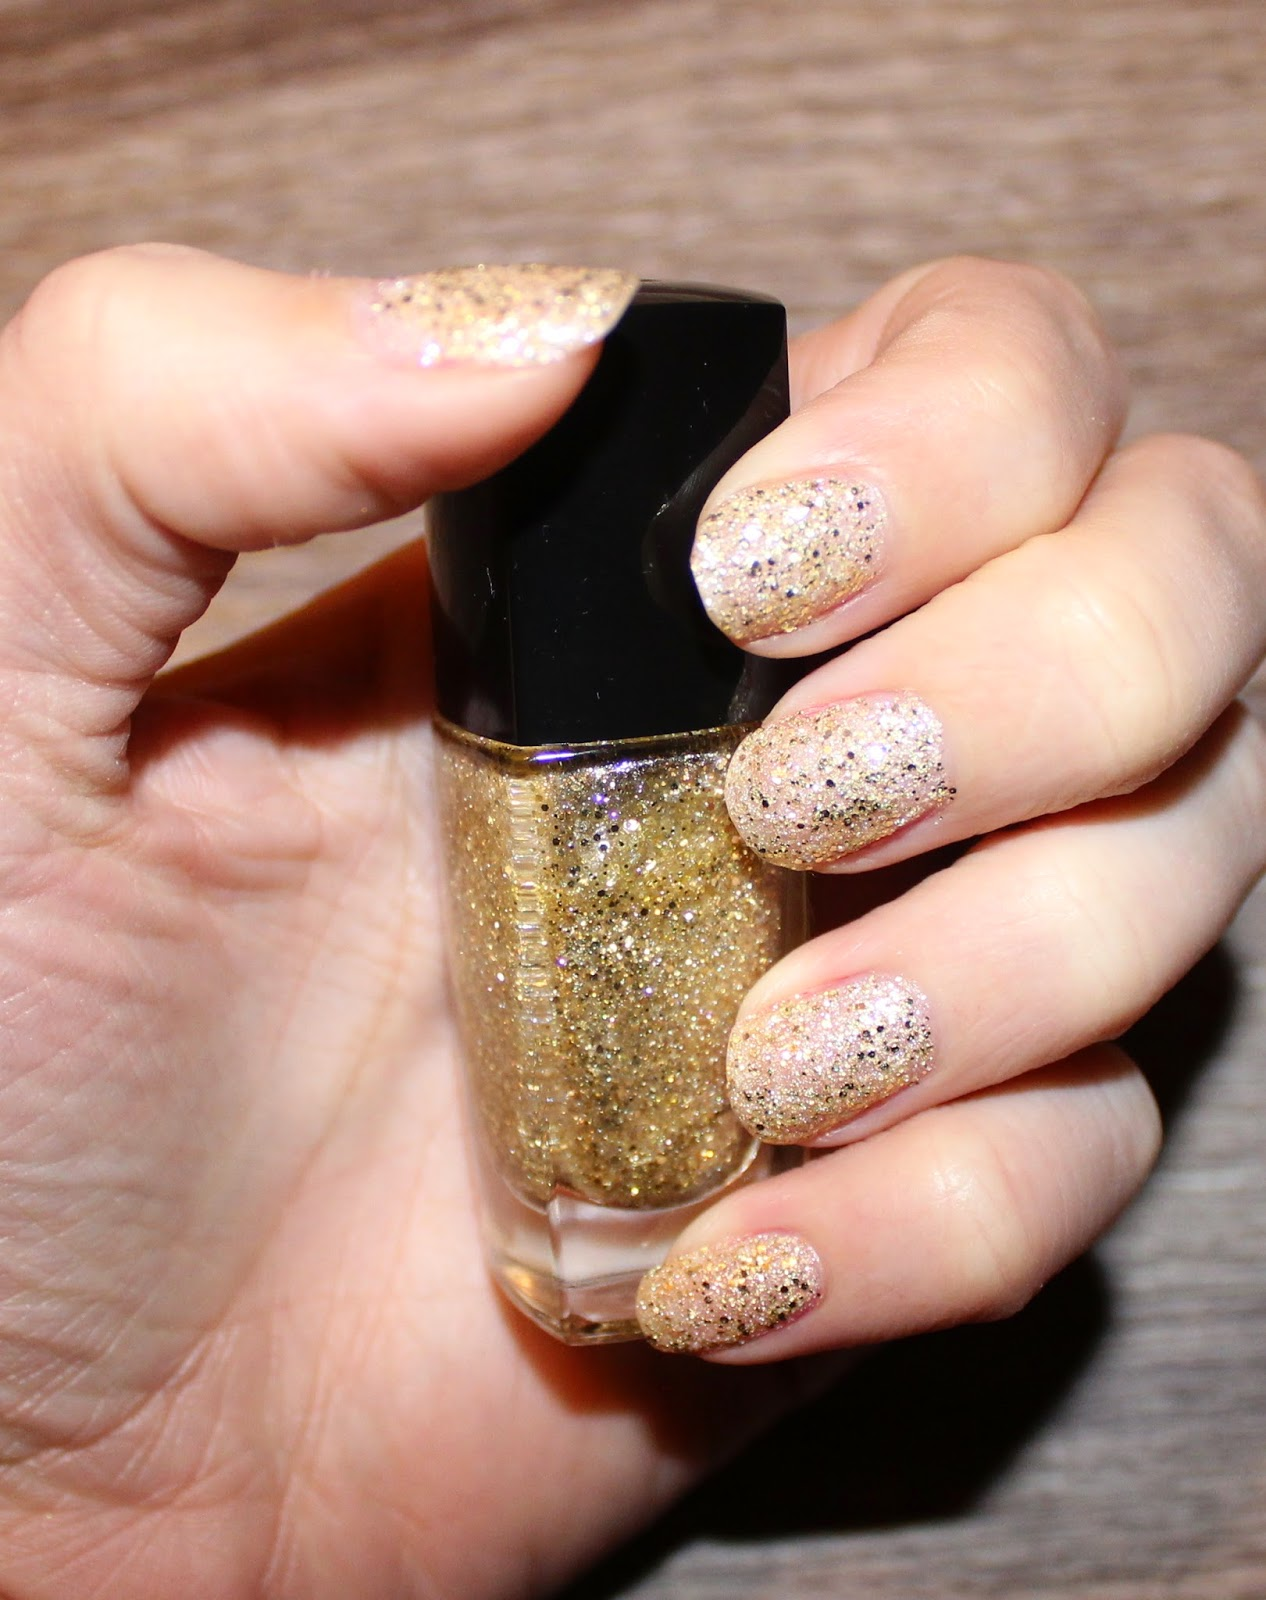 Lancôme Vernis in Love #550 Illuminations